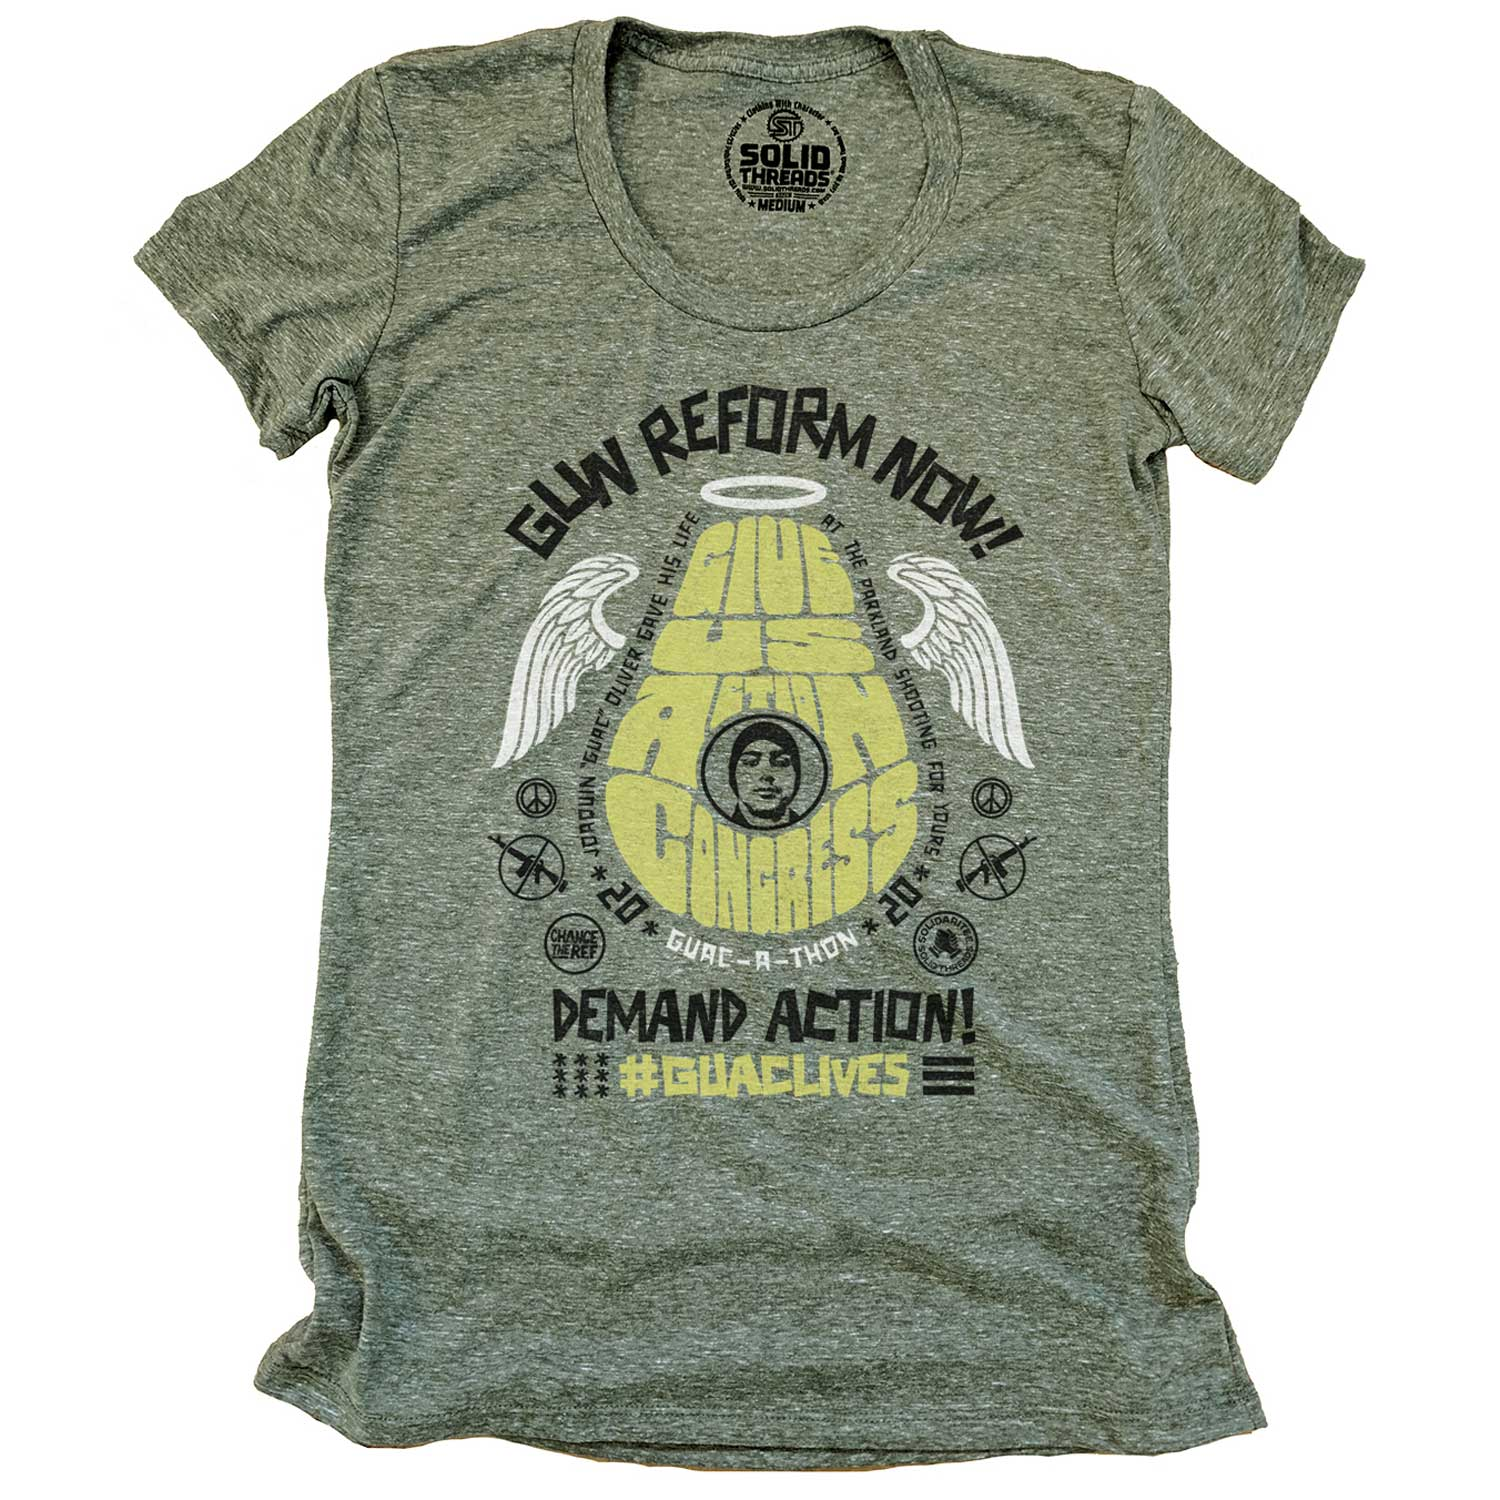 Women's Guac live give us action congress vintage inspired gun reform tee shirt with cool retro protest graphic | #GUAClives in SolidariTEE with Change The Ref